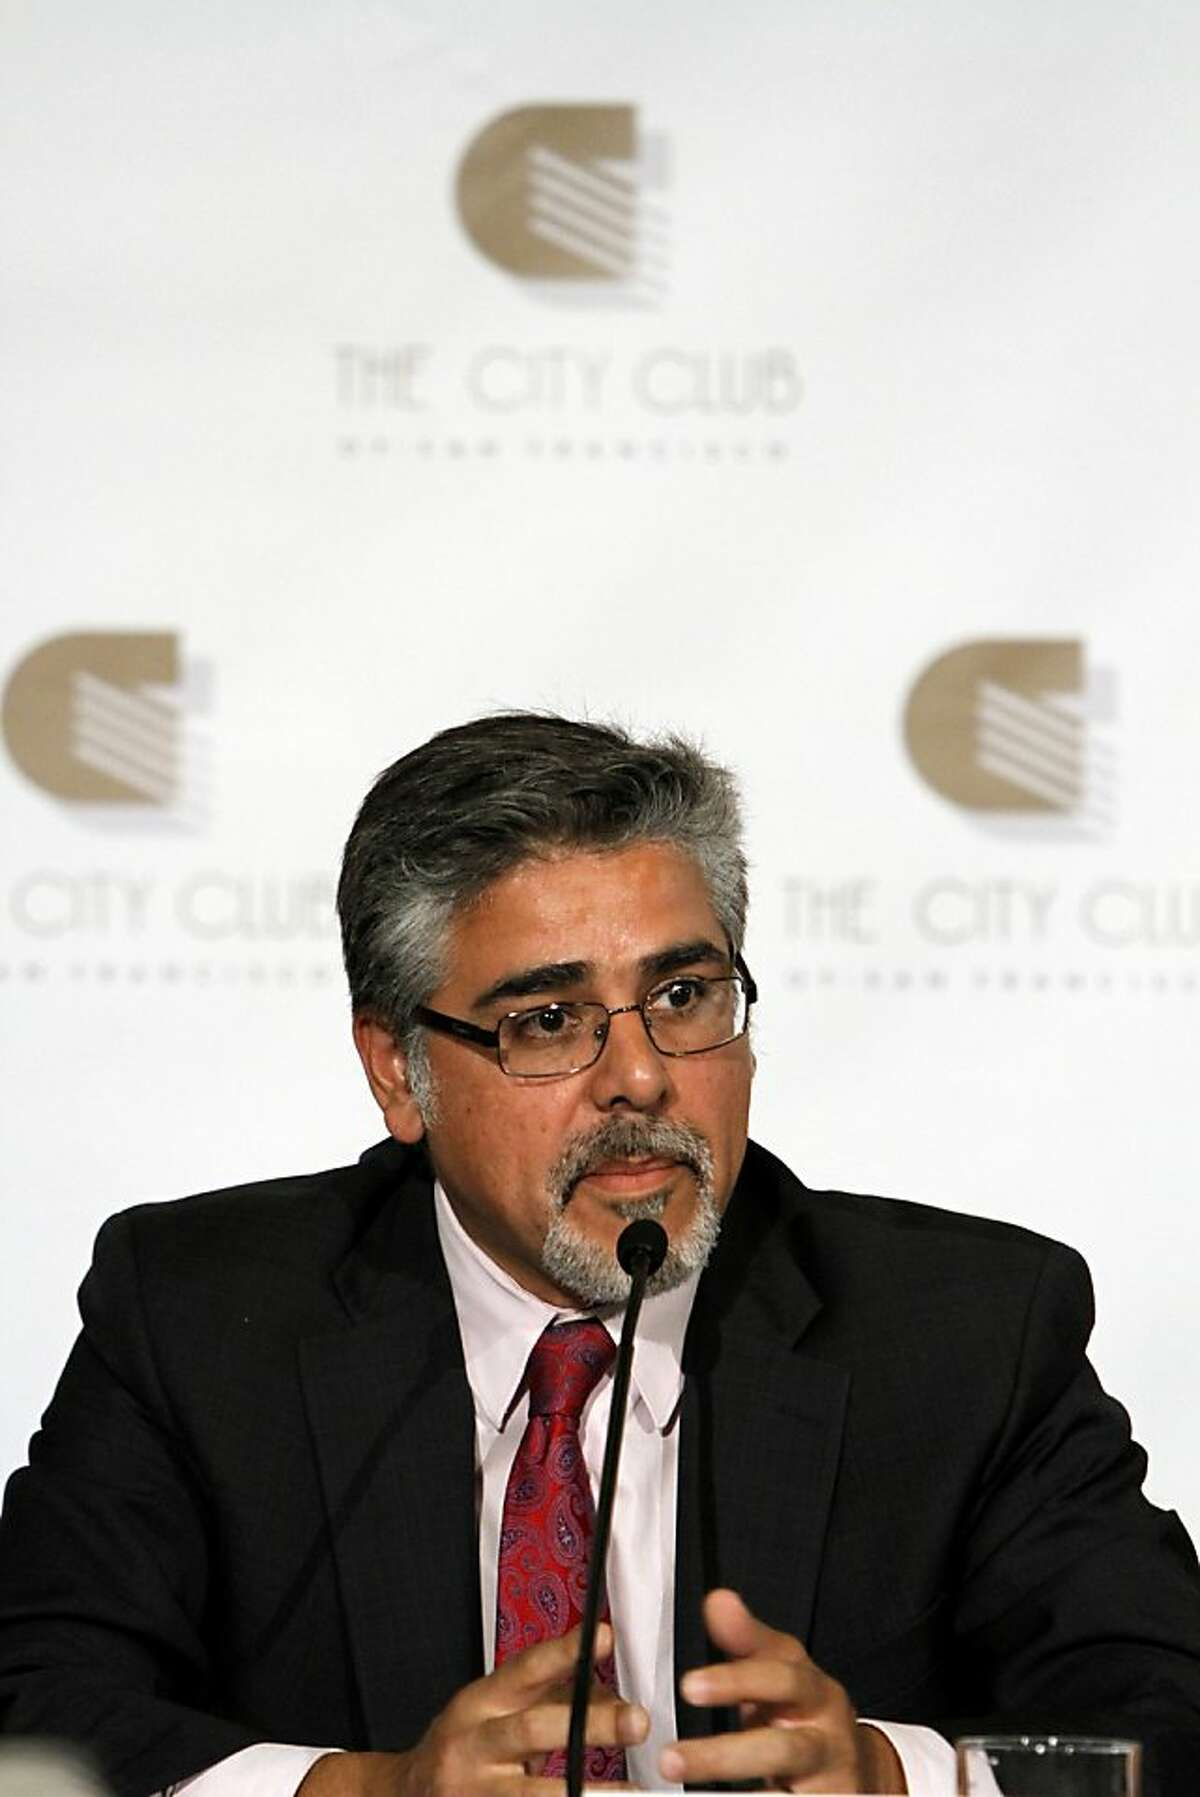 Mayoral candidate John Avalos answers a question during the mayoral debate at the City Club in San Francisco, Calif., Monday, October 10, 2011.